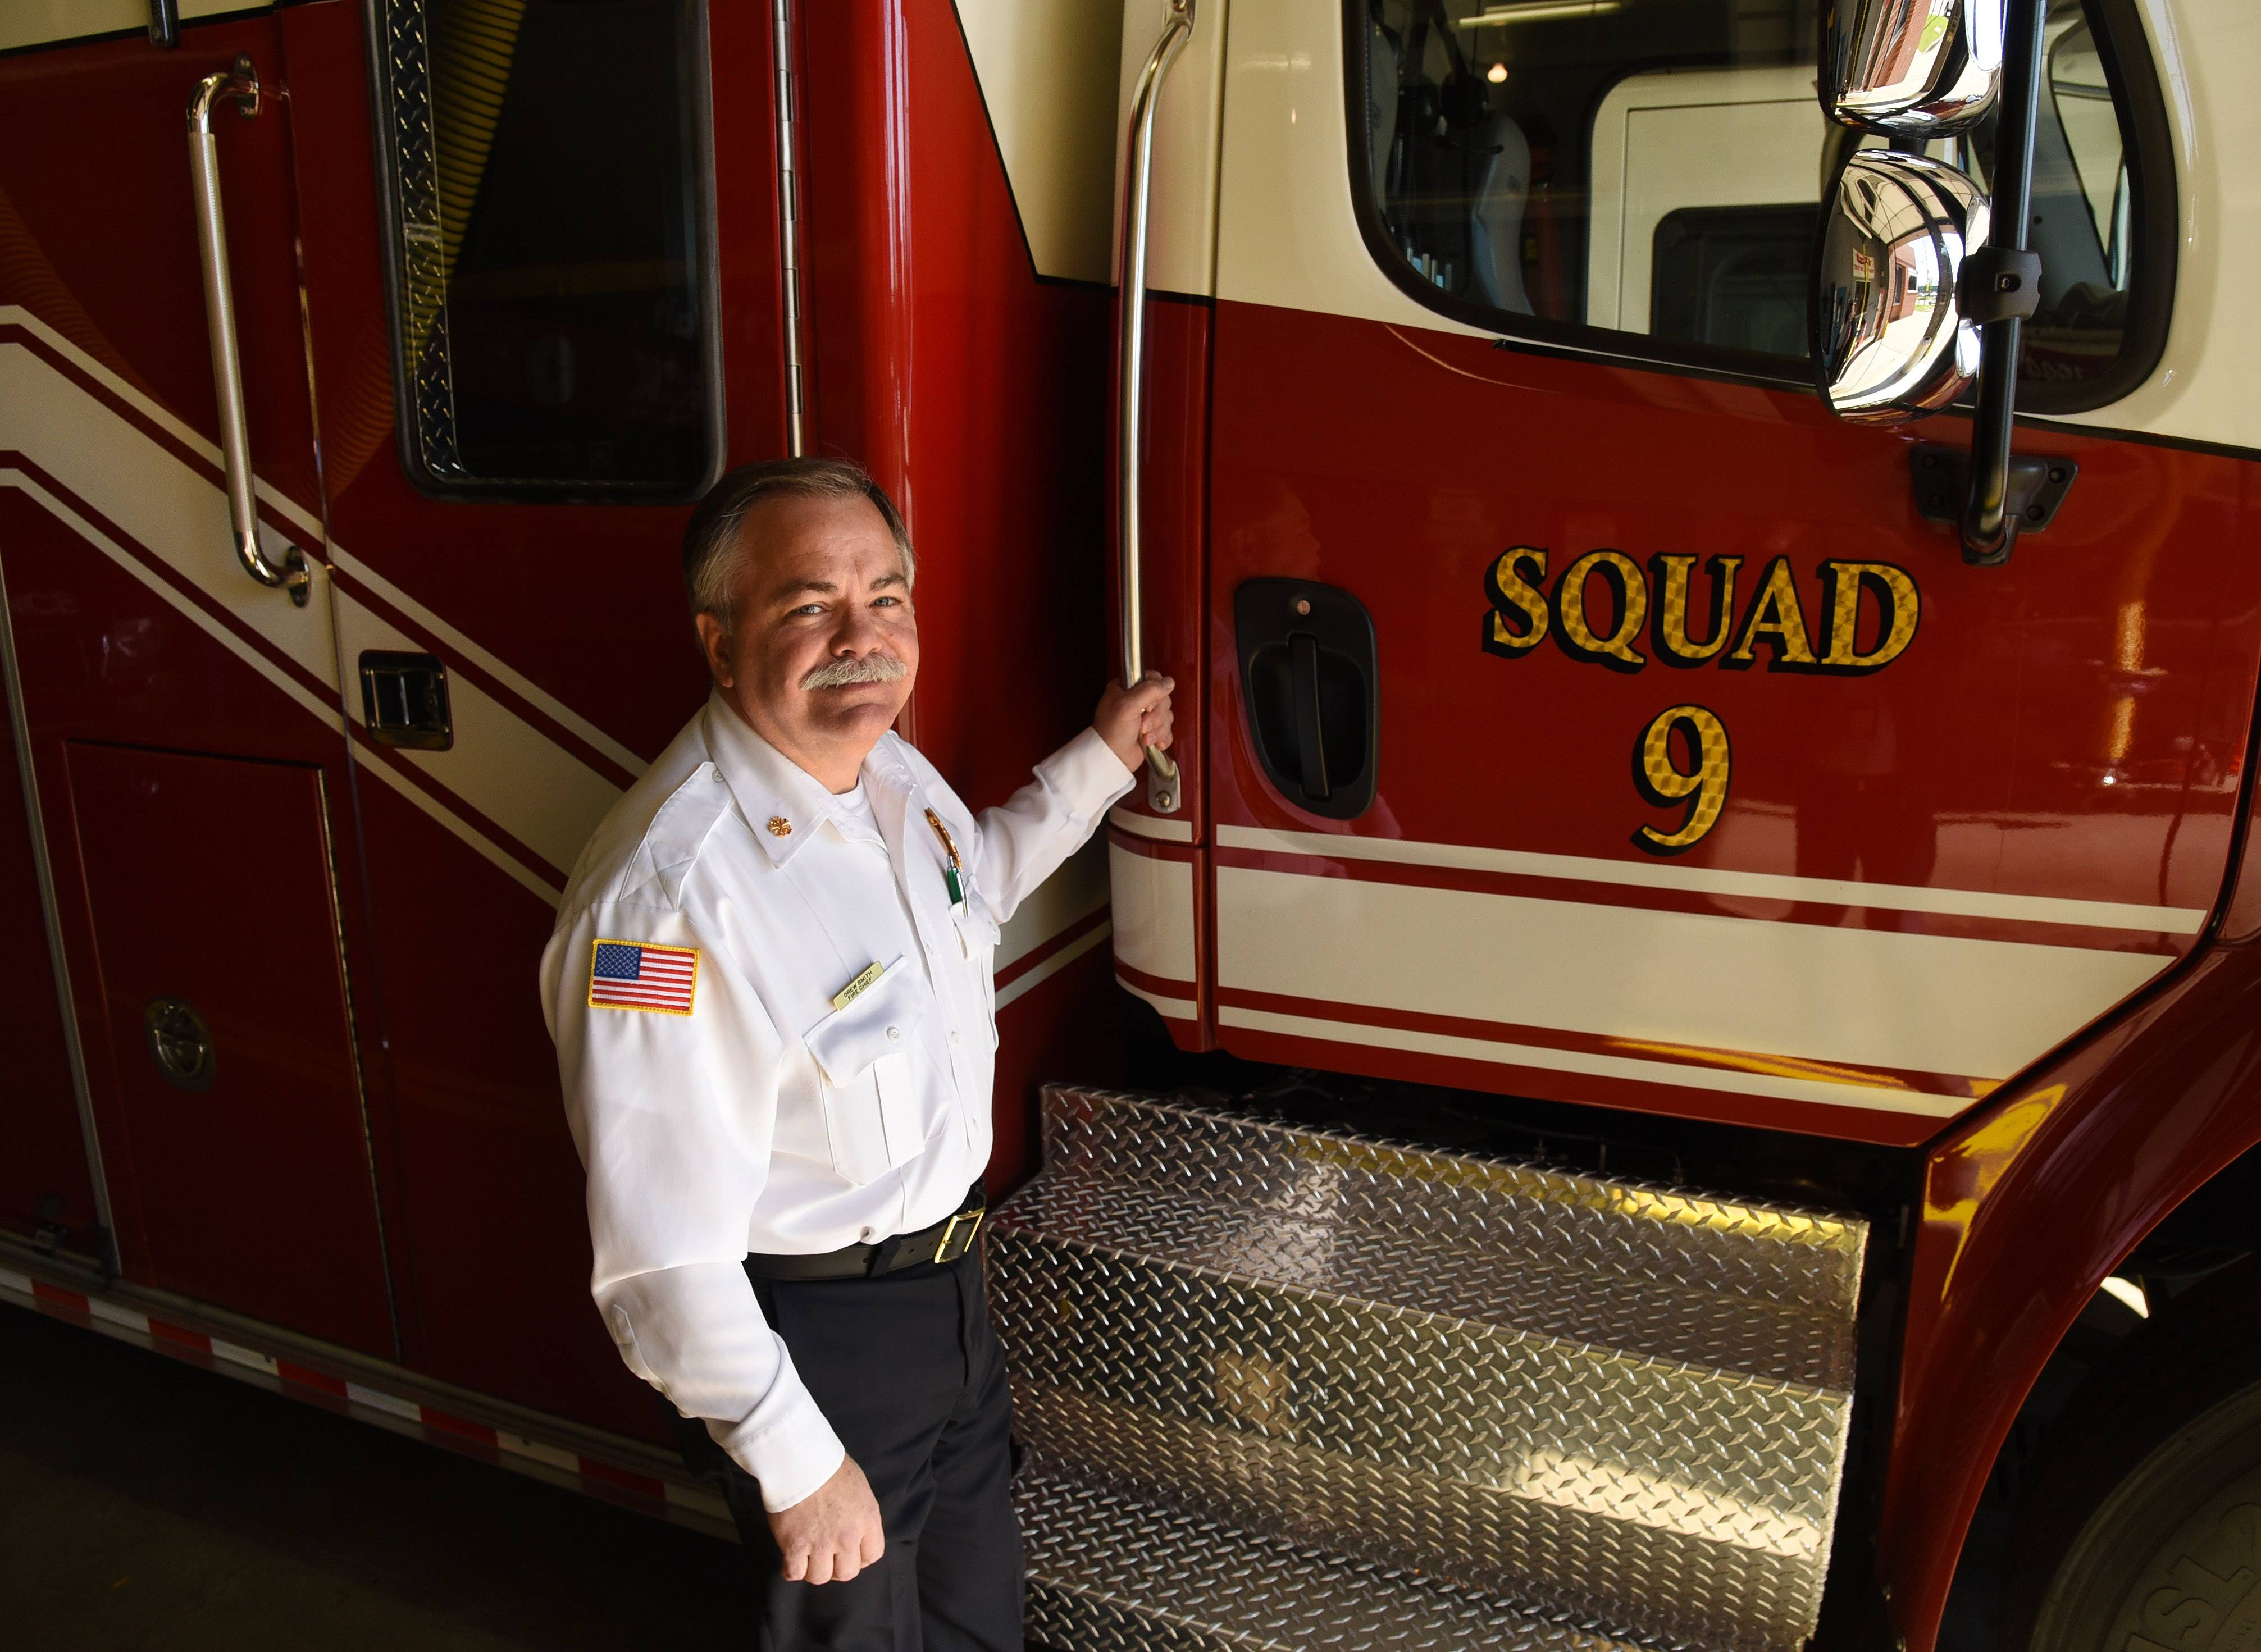 Ten years ago, new Prospect Heights Fire Chief Drew Smith's dedication to fire service -- and his community -- was recognized when he was inducted into Prospect High School's Distinguished Alumni Hall of Fame.